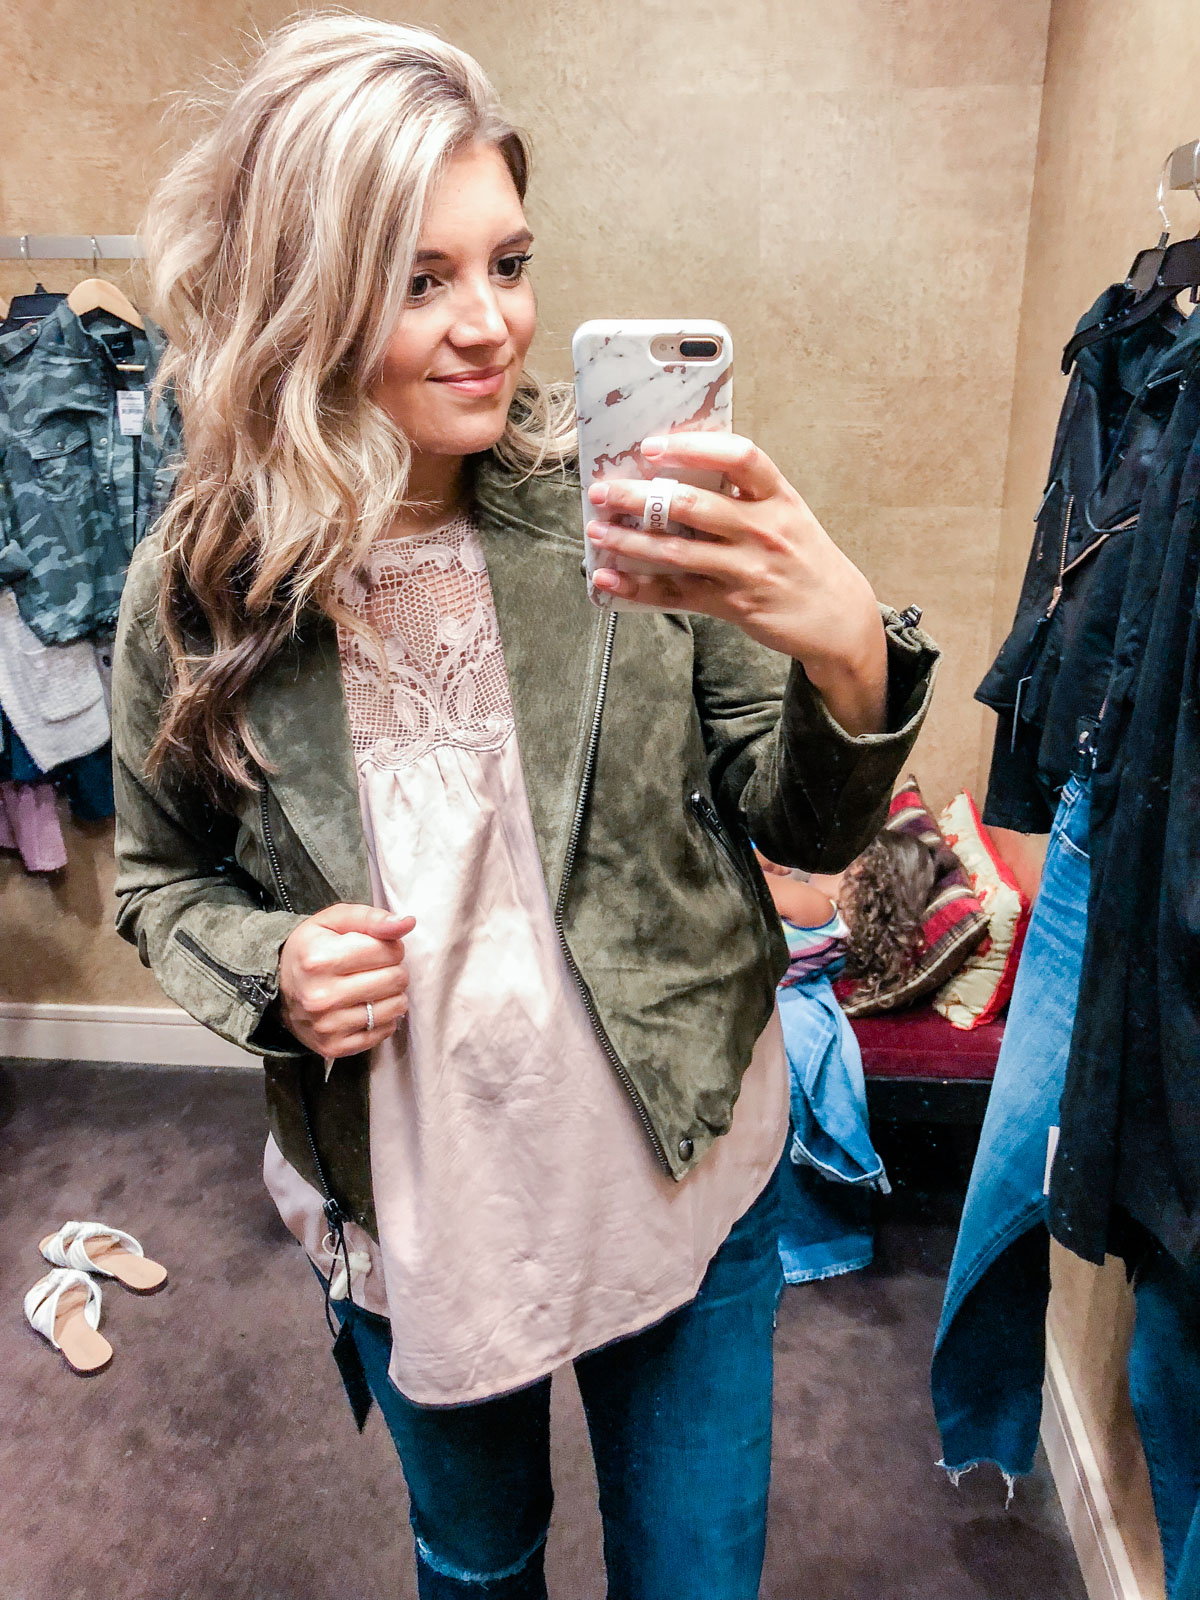 suede jacket - Nordstrom anniversary sale 2018 try-on session: over 25 items reviewed for fit and size! | bylaurenm.com